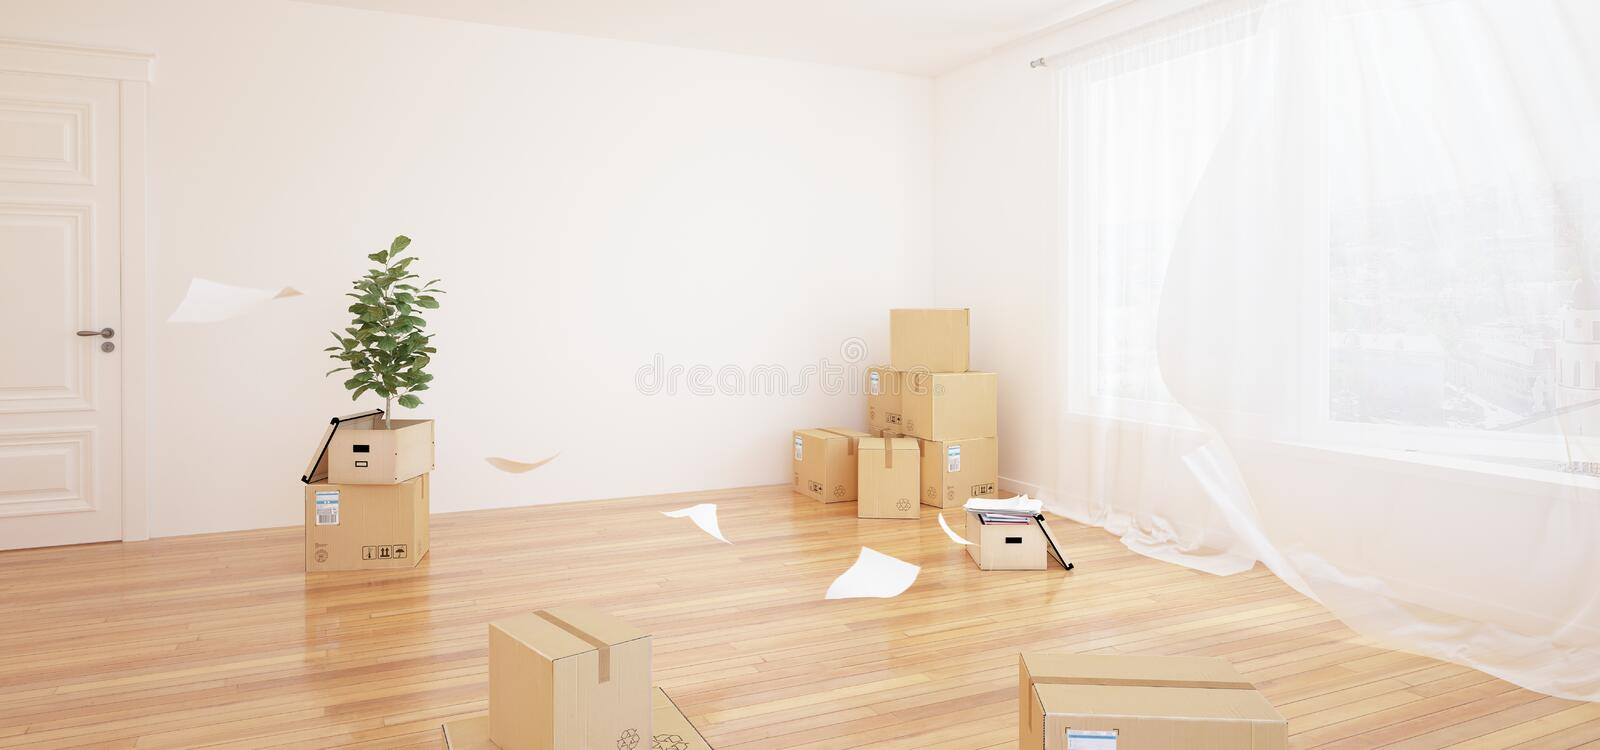 Interior with moving boxes in empty white room royalty free illustration